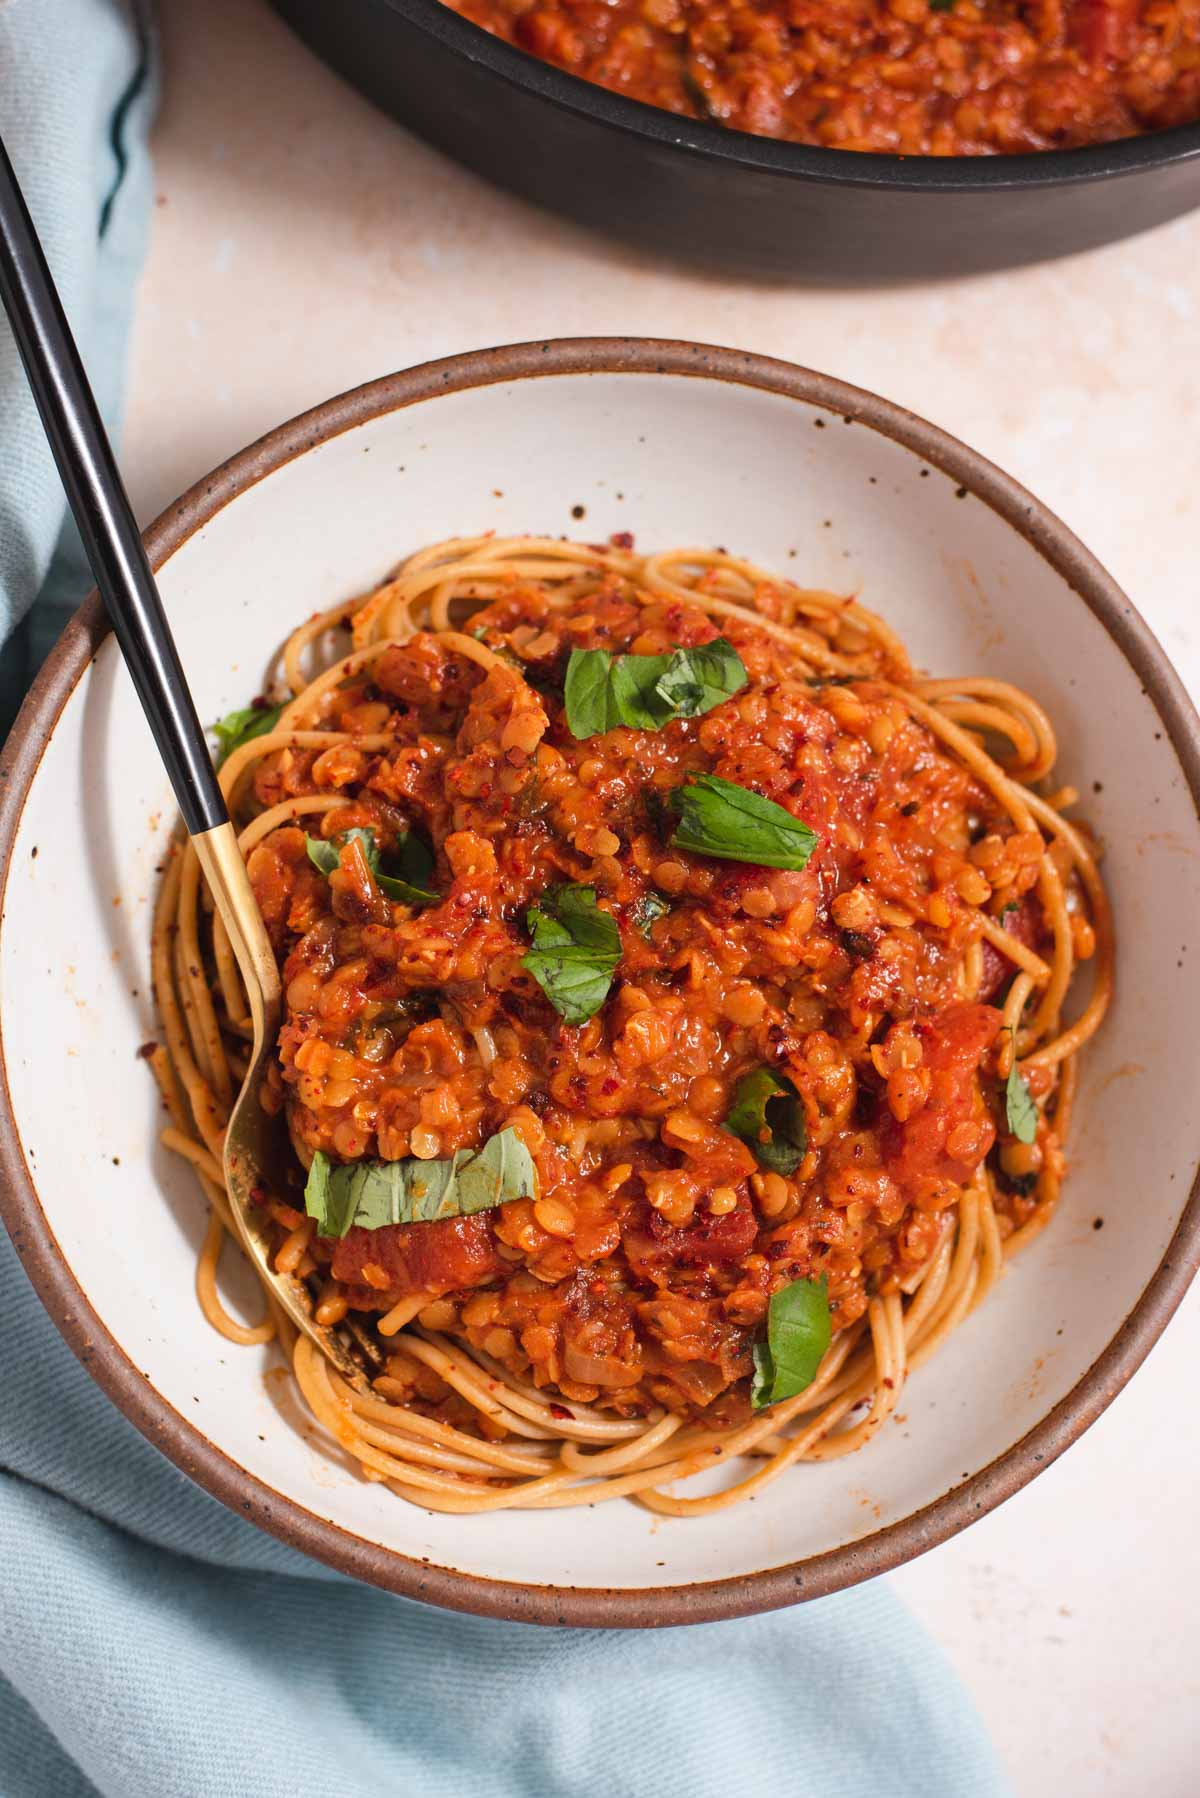 Spaghetti topped with red lentil tomato sauce and pieces of basil in a white bowl